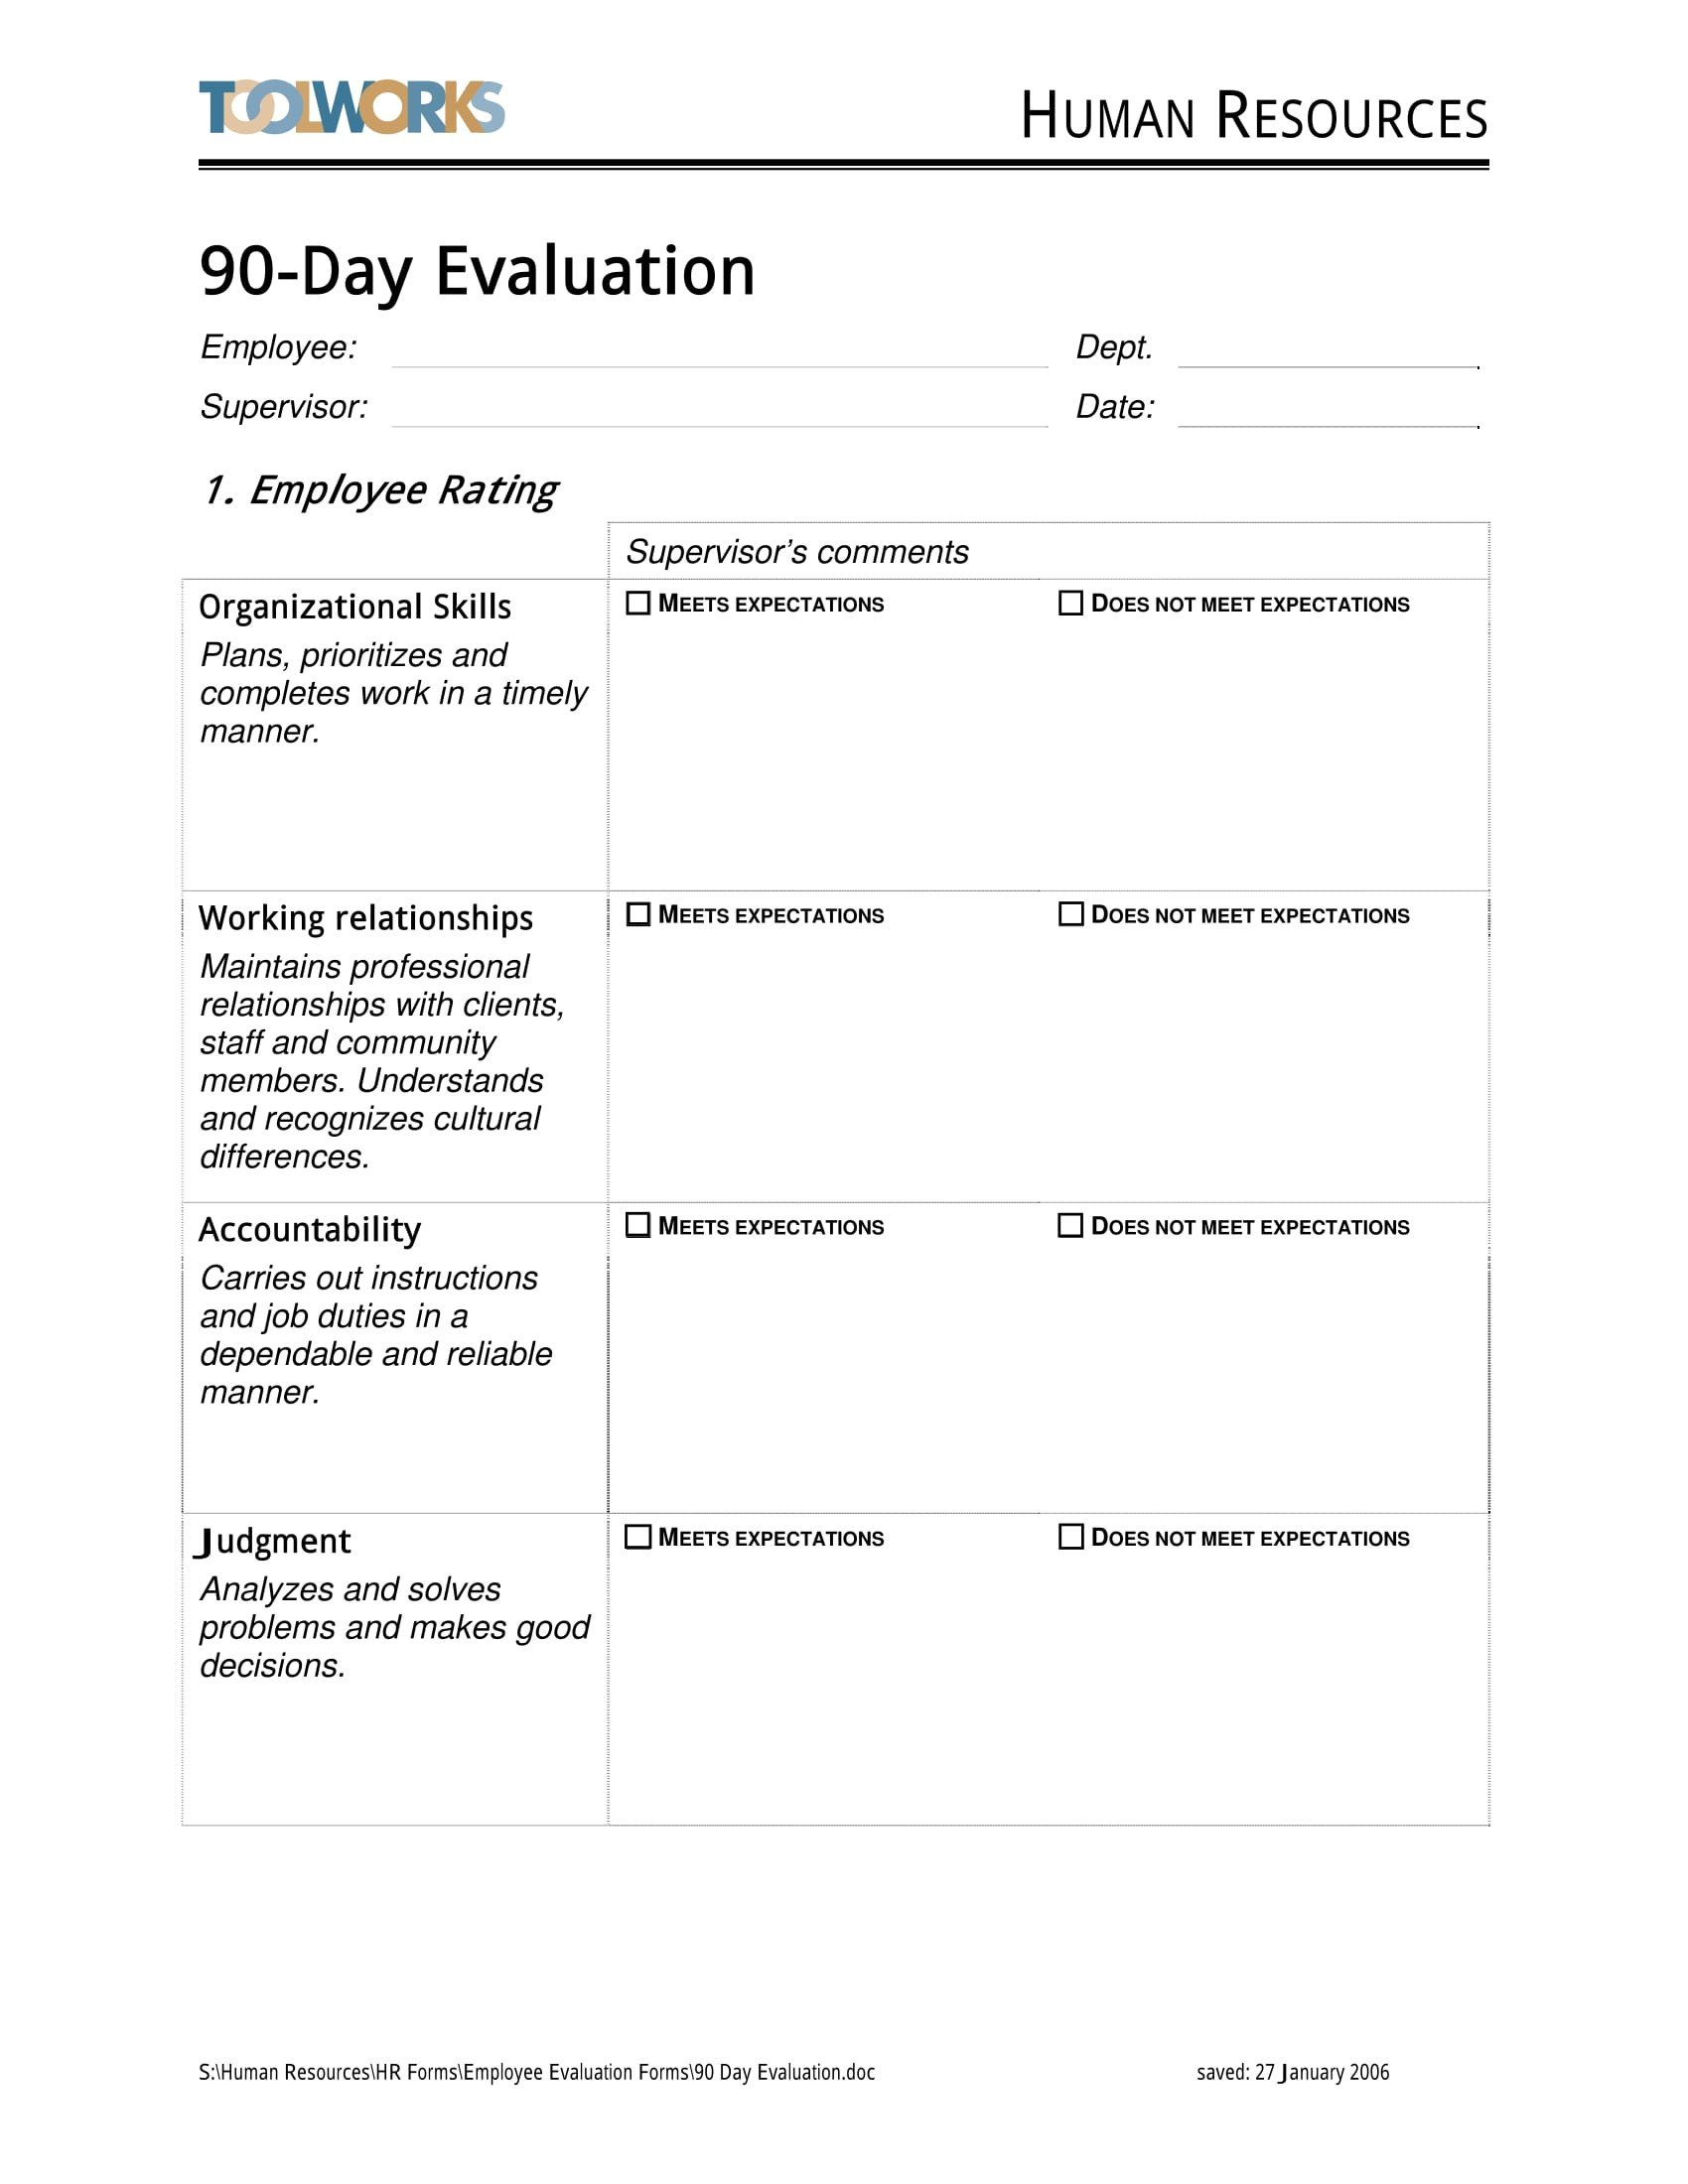 90 Day Performance Review Template 14 90 Day Review forms Free Word Pdf format Download